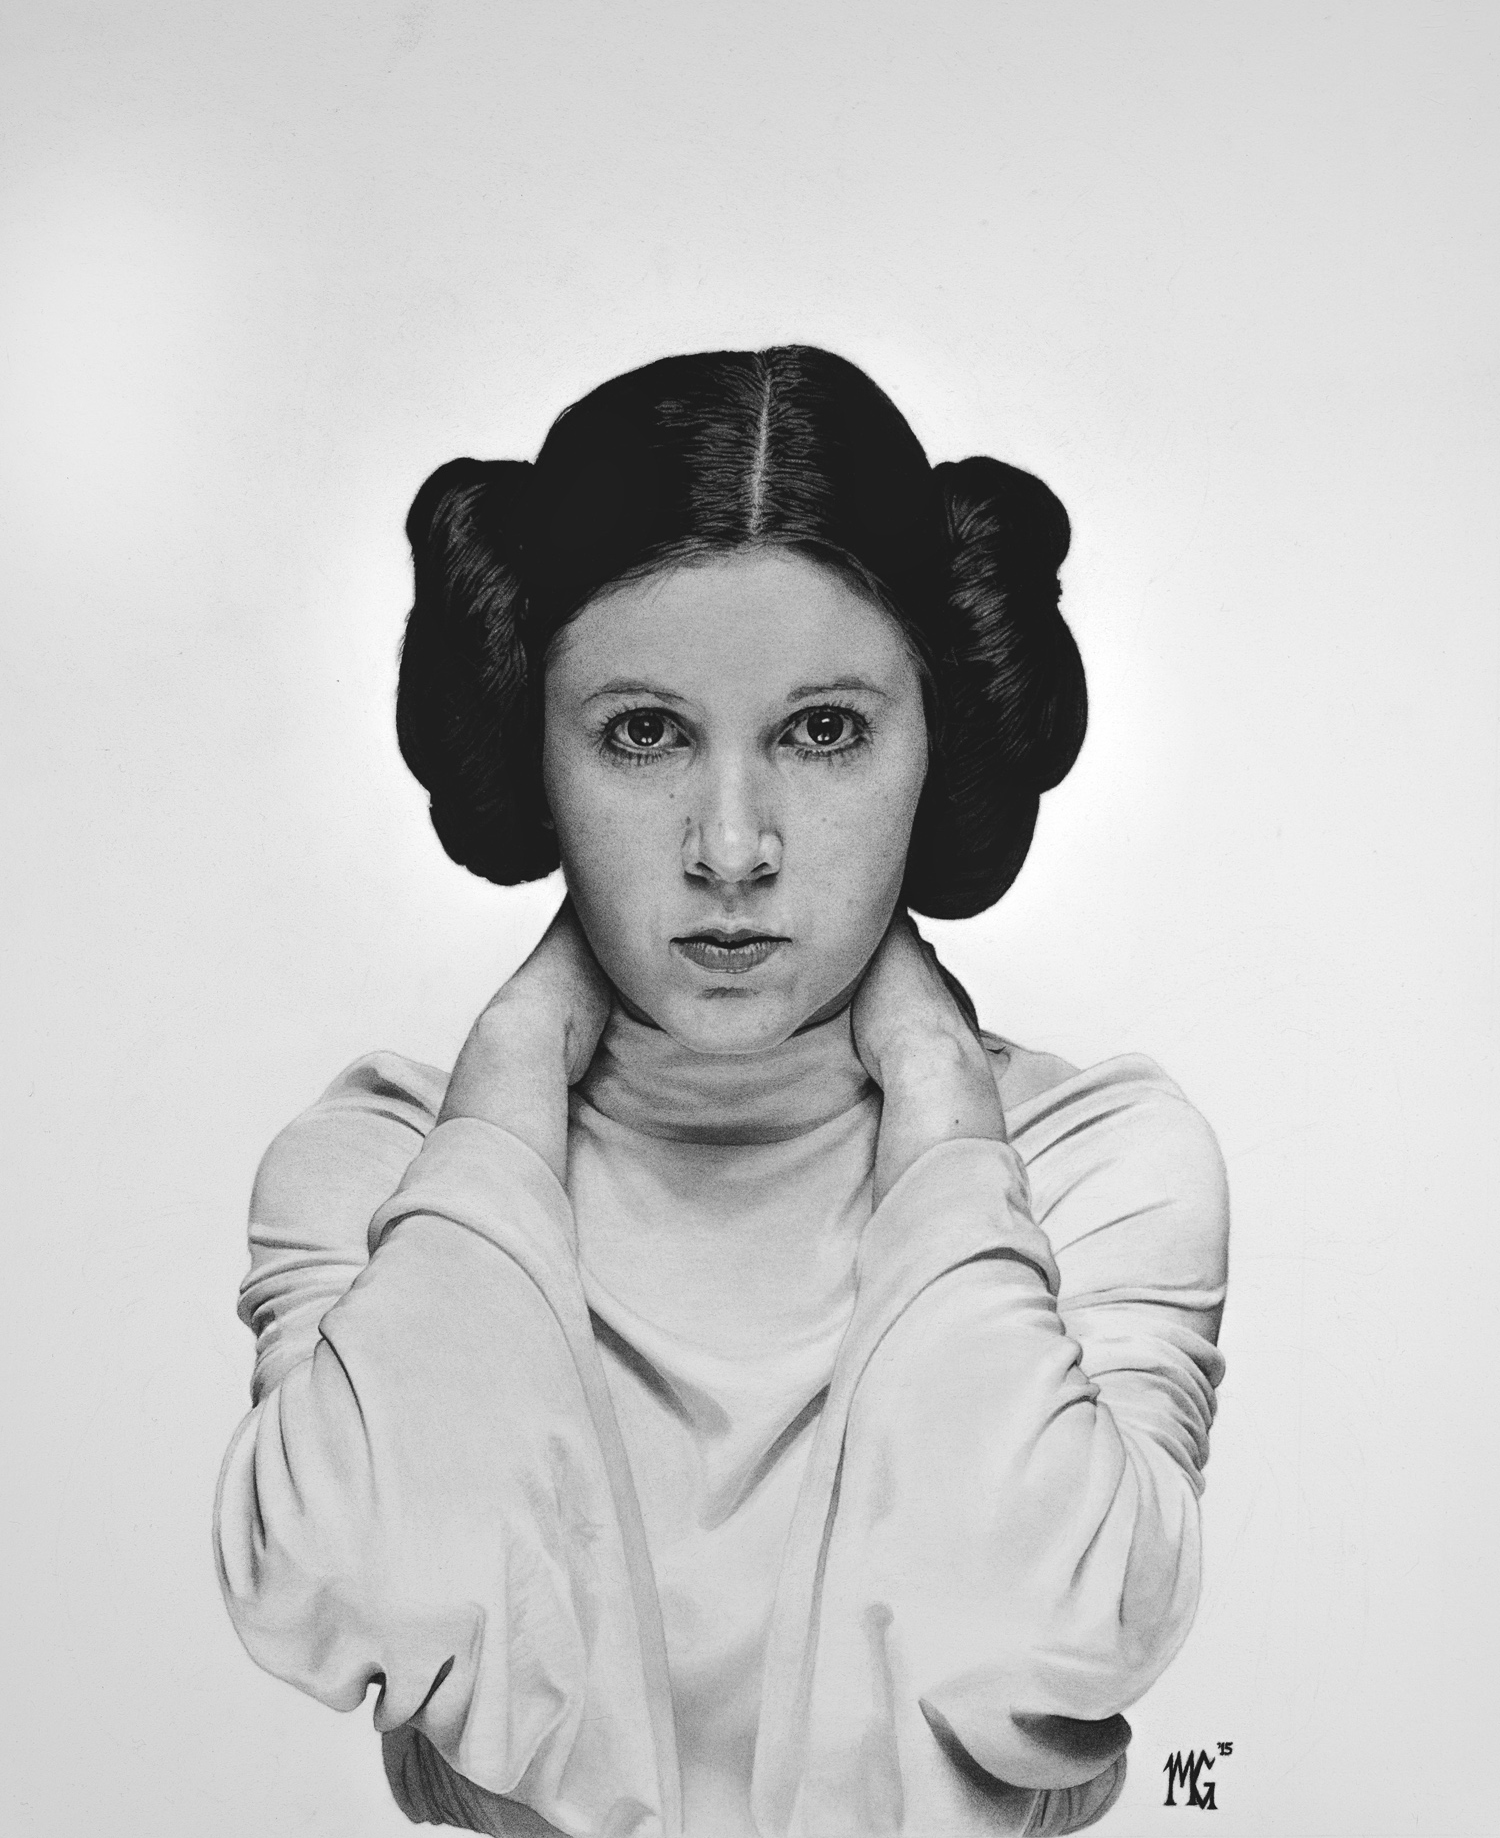 Leia_StarWars_LoResCropped_mgdrawing.jpg